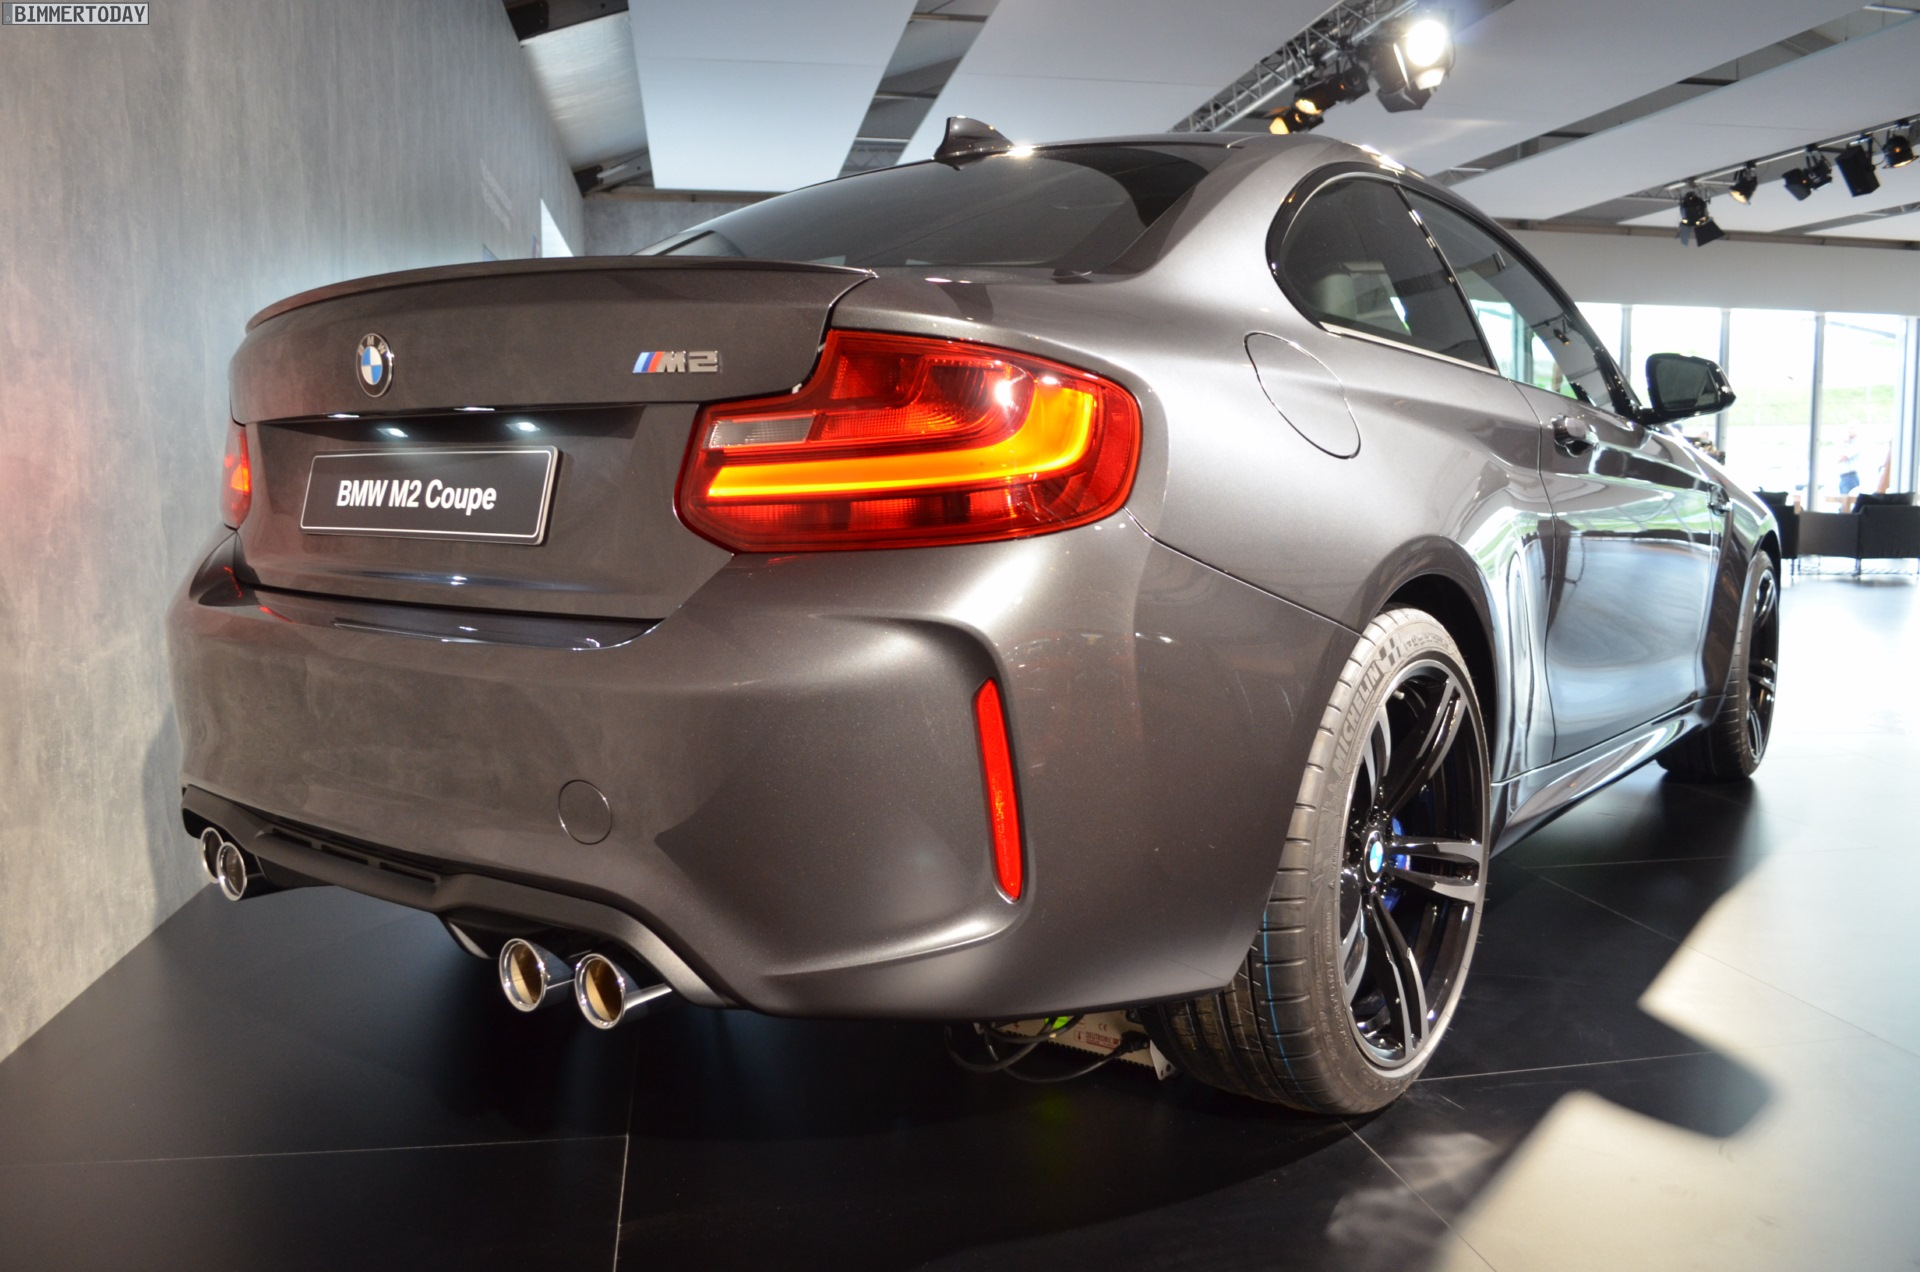 Anthrazit Metallic Bmw Bmw M2 In Mineralgrau Metallic Live Fotos In Dunkelgrau